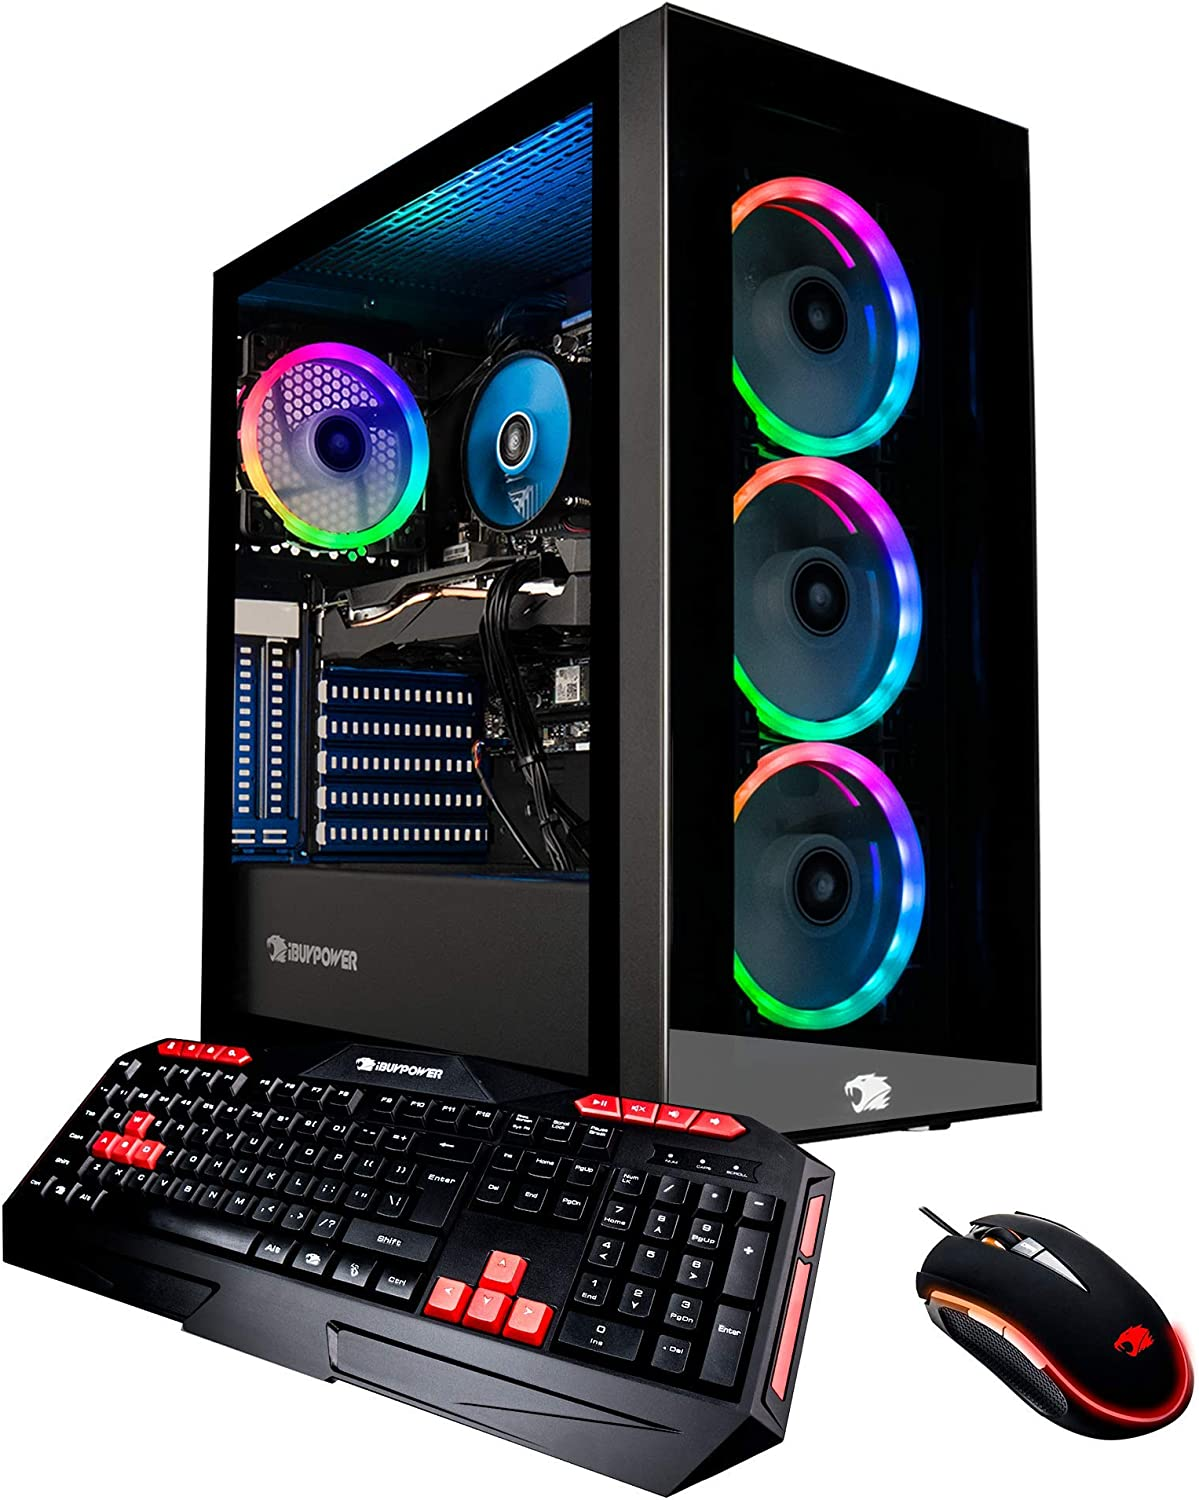 iBUYPOWER Gaming PC Computer Desktop Element 9260 (Intel Core i7-9700F 3.0Ghz, NVIDIA GeForce GTX 1660 Ti 6GB, 16GB DDR4, 240GB SSD, 1TB HDD, WiFi & Windows 10 Home) Black